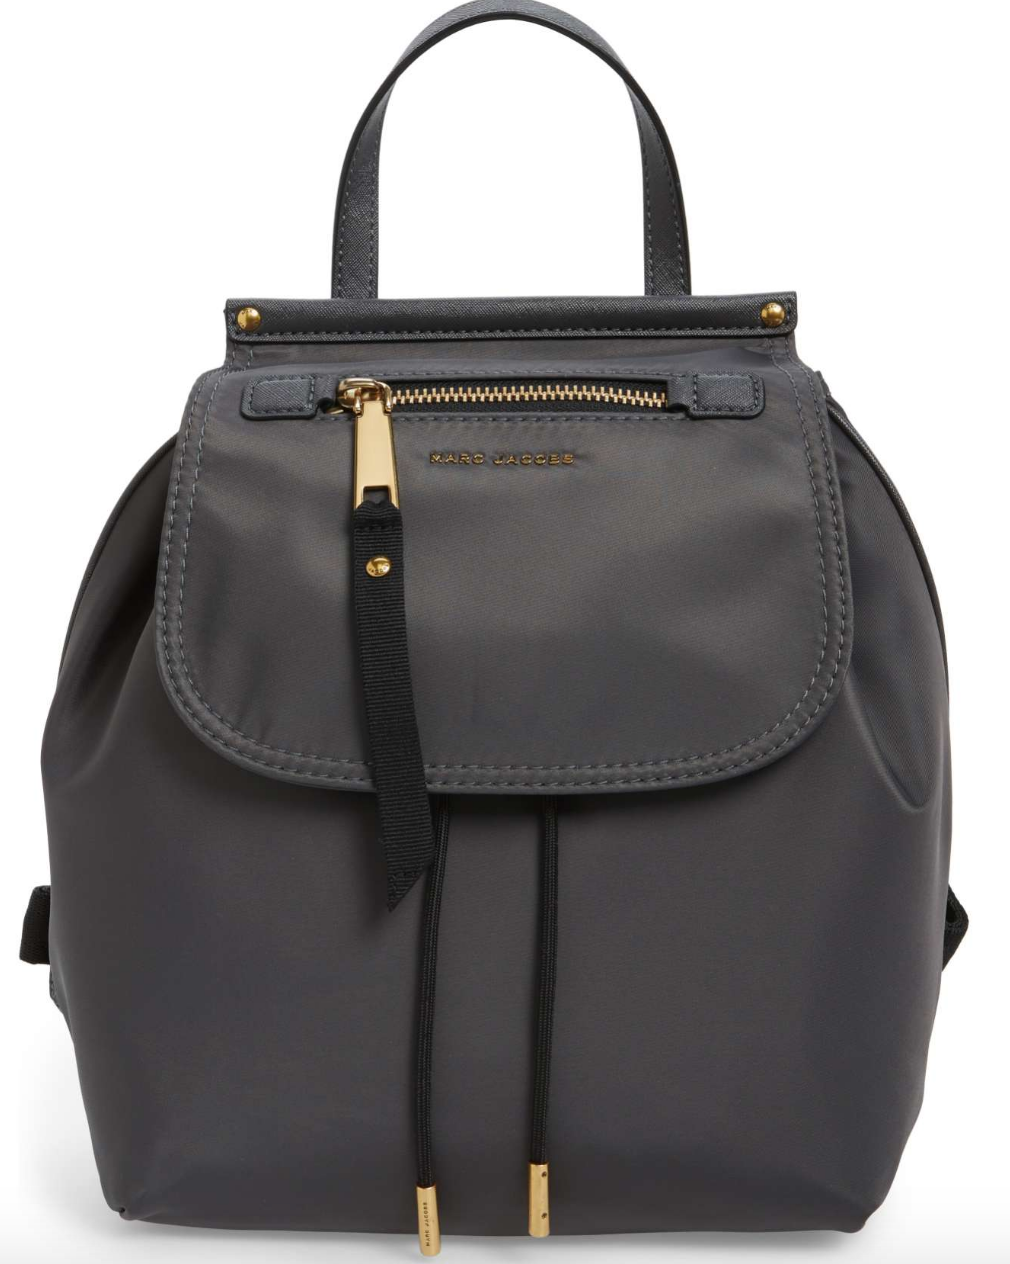 Marc Jacobs grey backpack